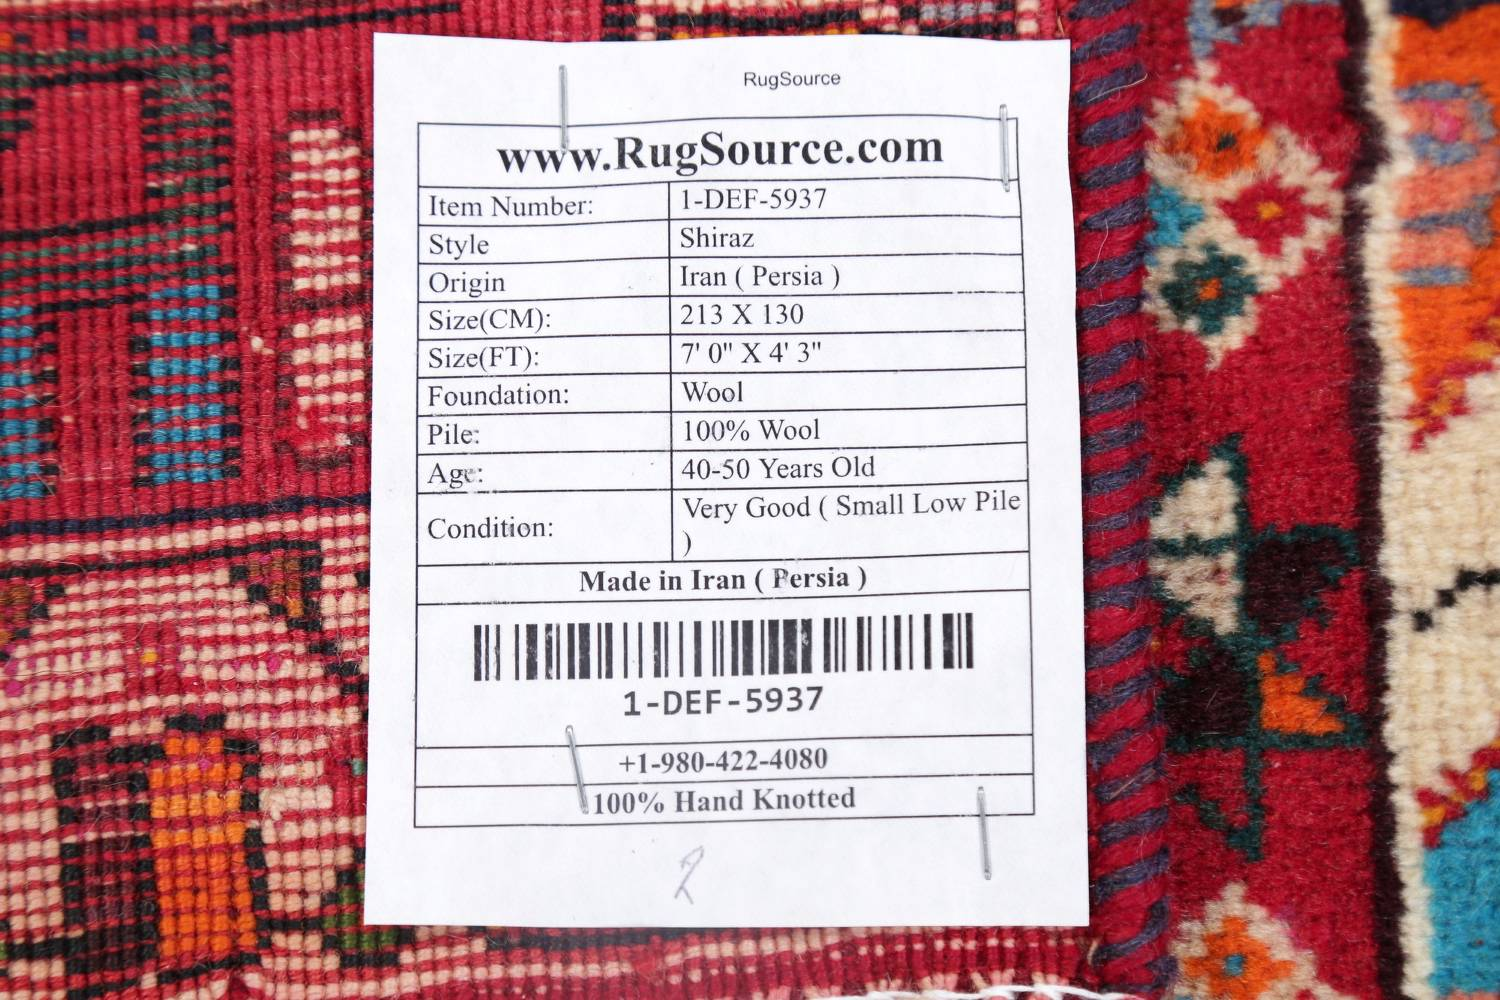 Vintage Red Pictorial Shiraz Persian Wool Rug 4x7 image 22